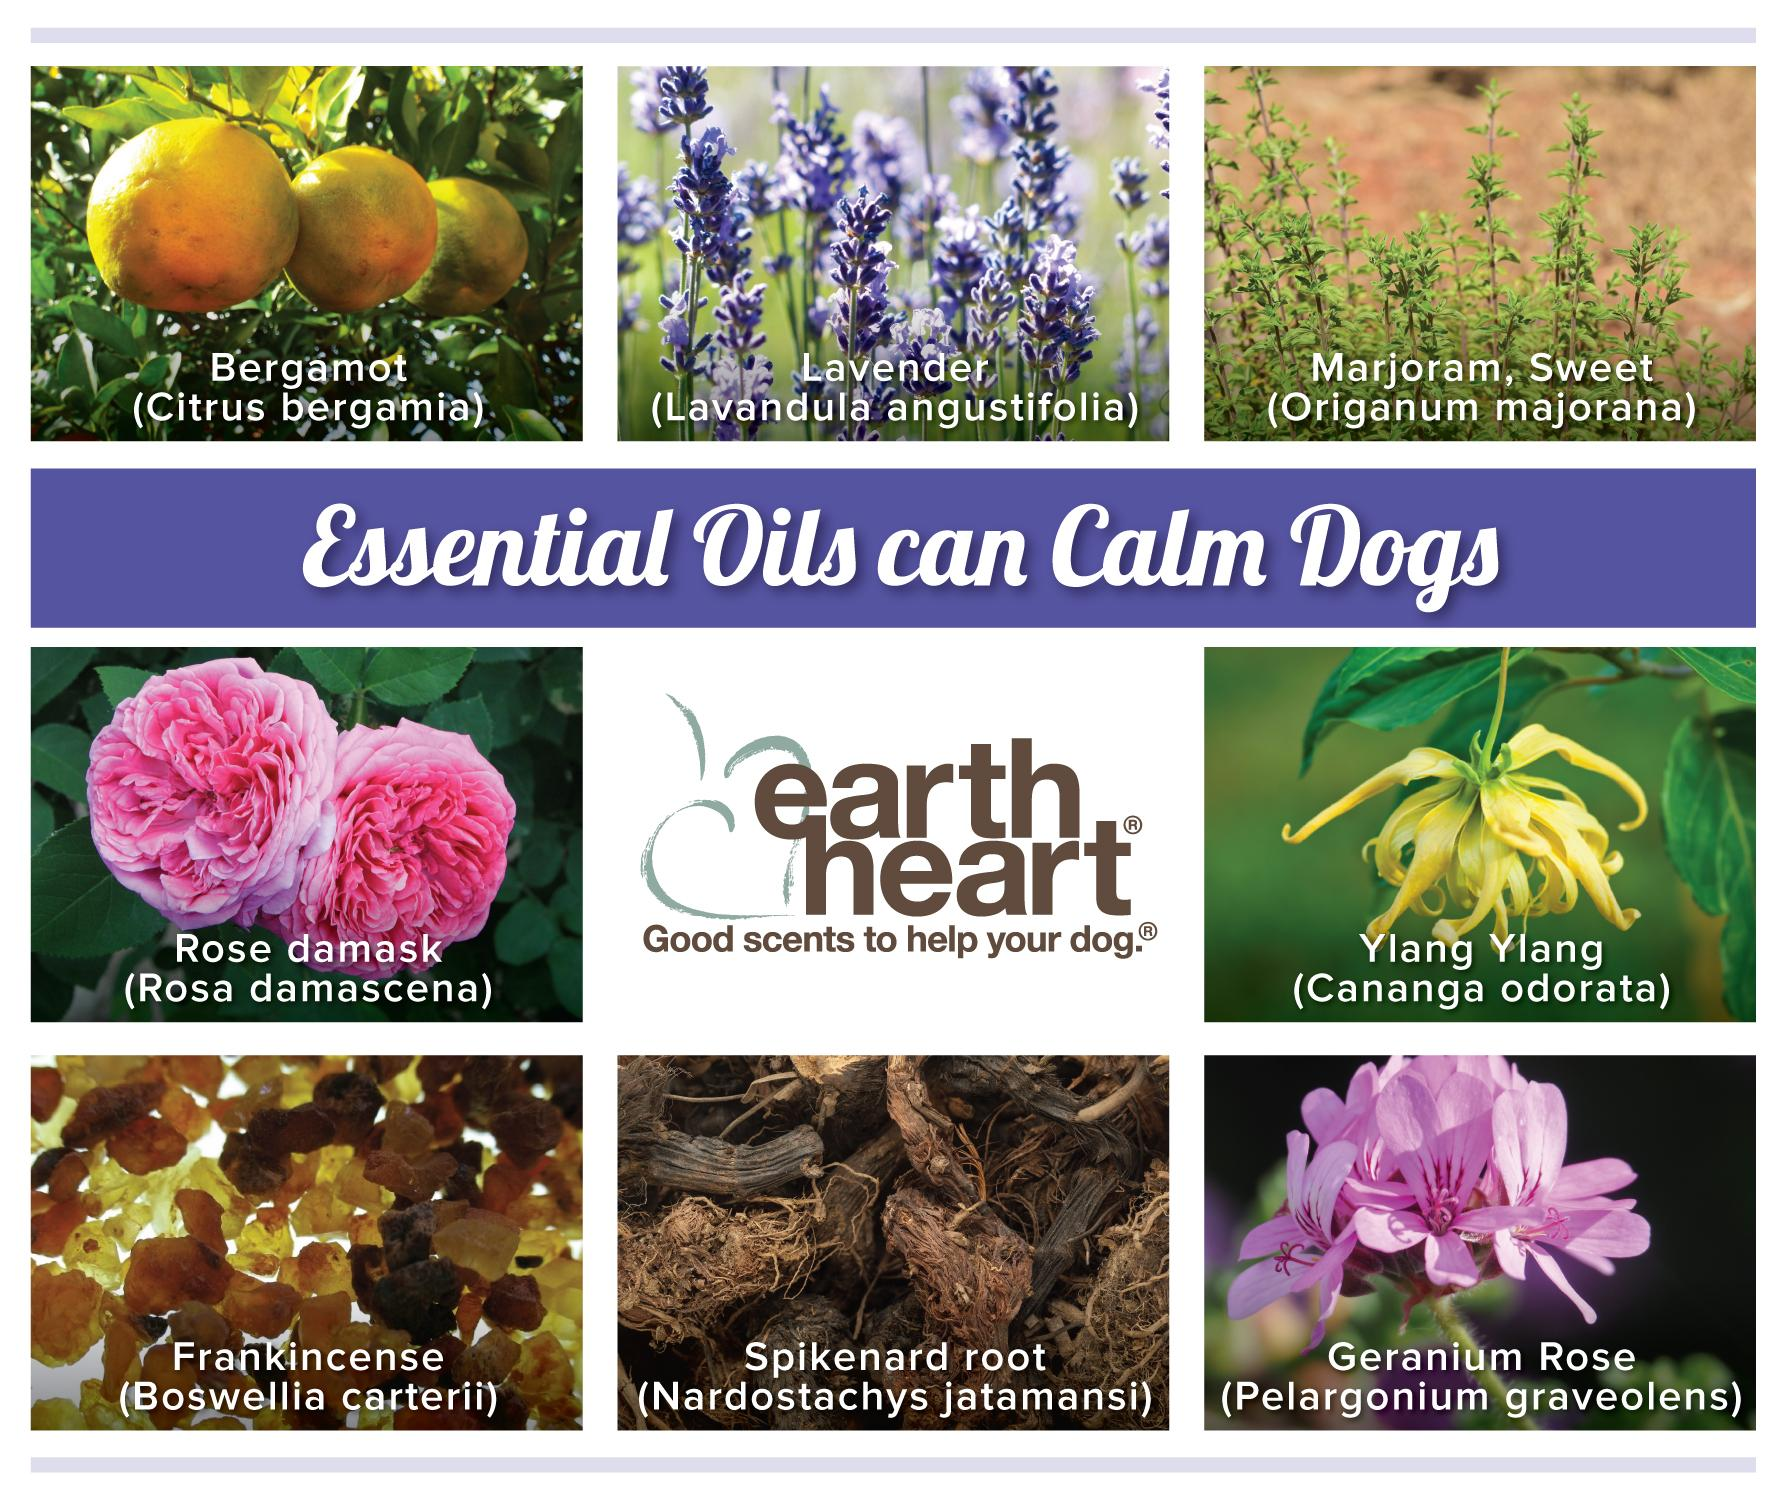 Does Aromatherapy Really Calm Dogs Pethub